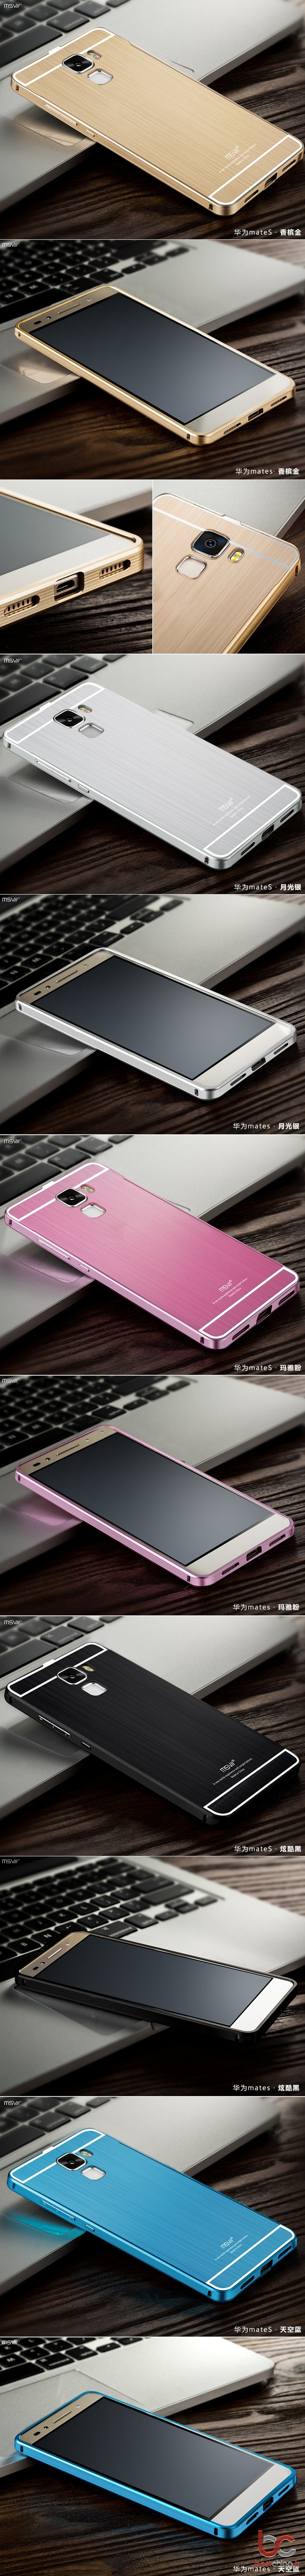 Huawei Mate S Aluminium Back Cover (3)